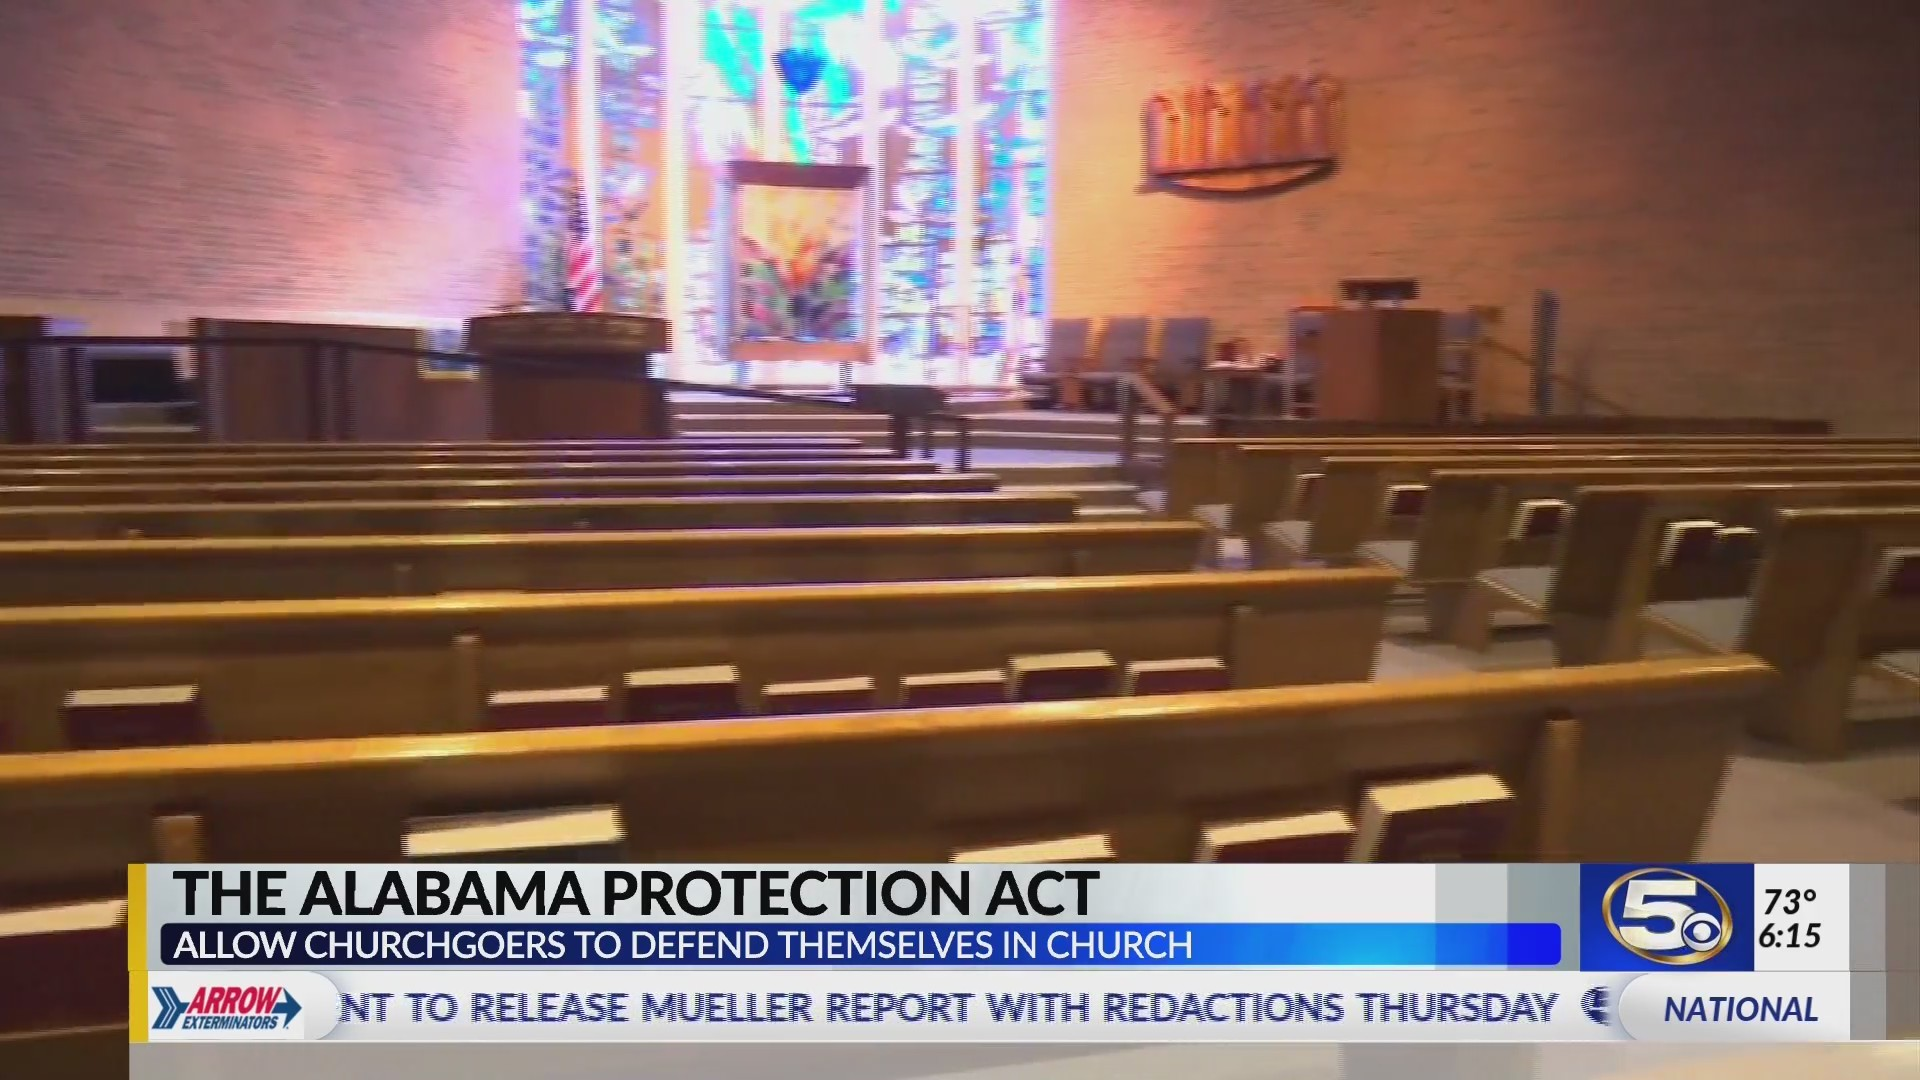 VIDEO: Alabama bill would allow guns in church